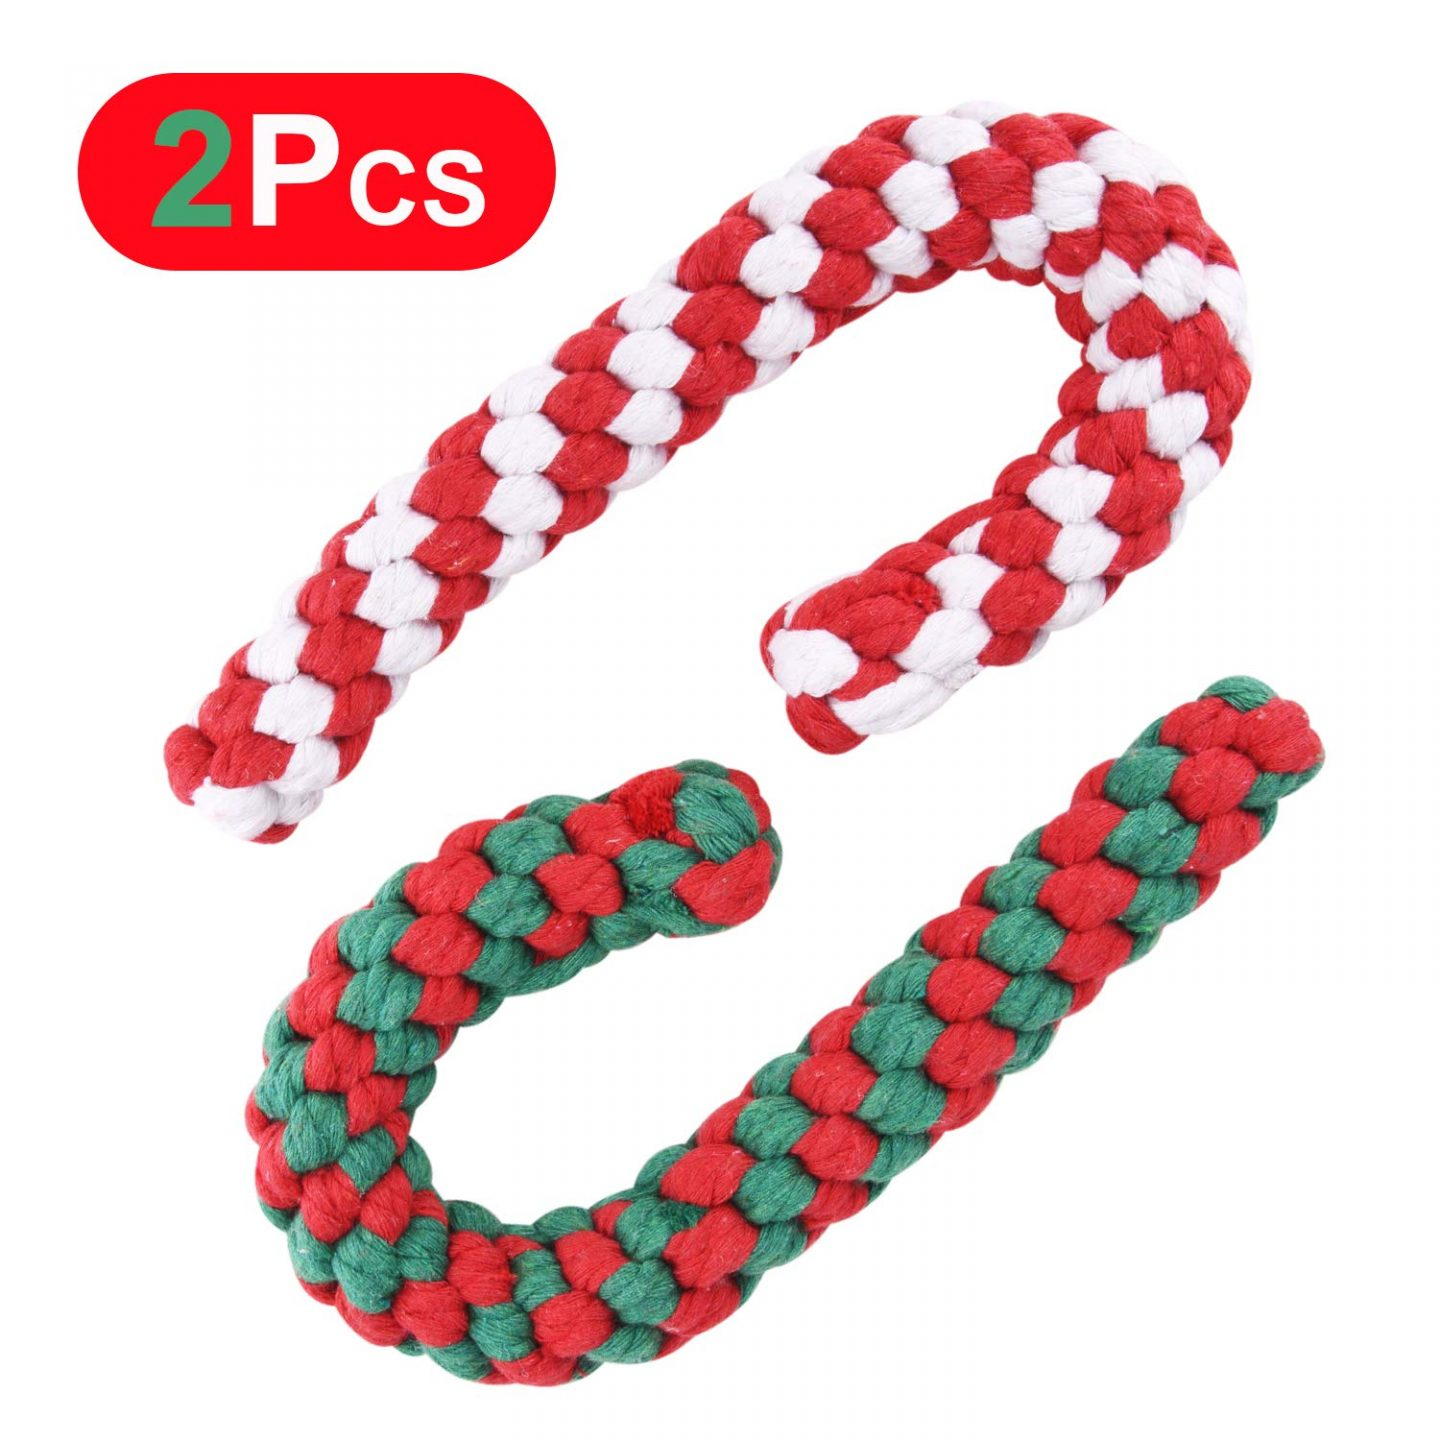 Two candy cane rope toys for dogs.